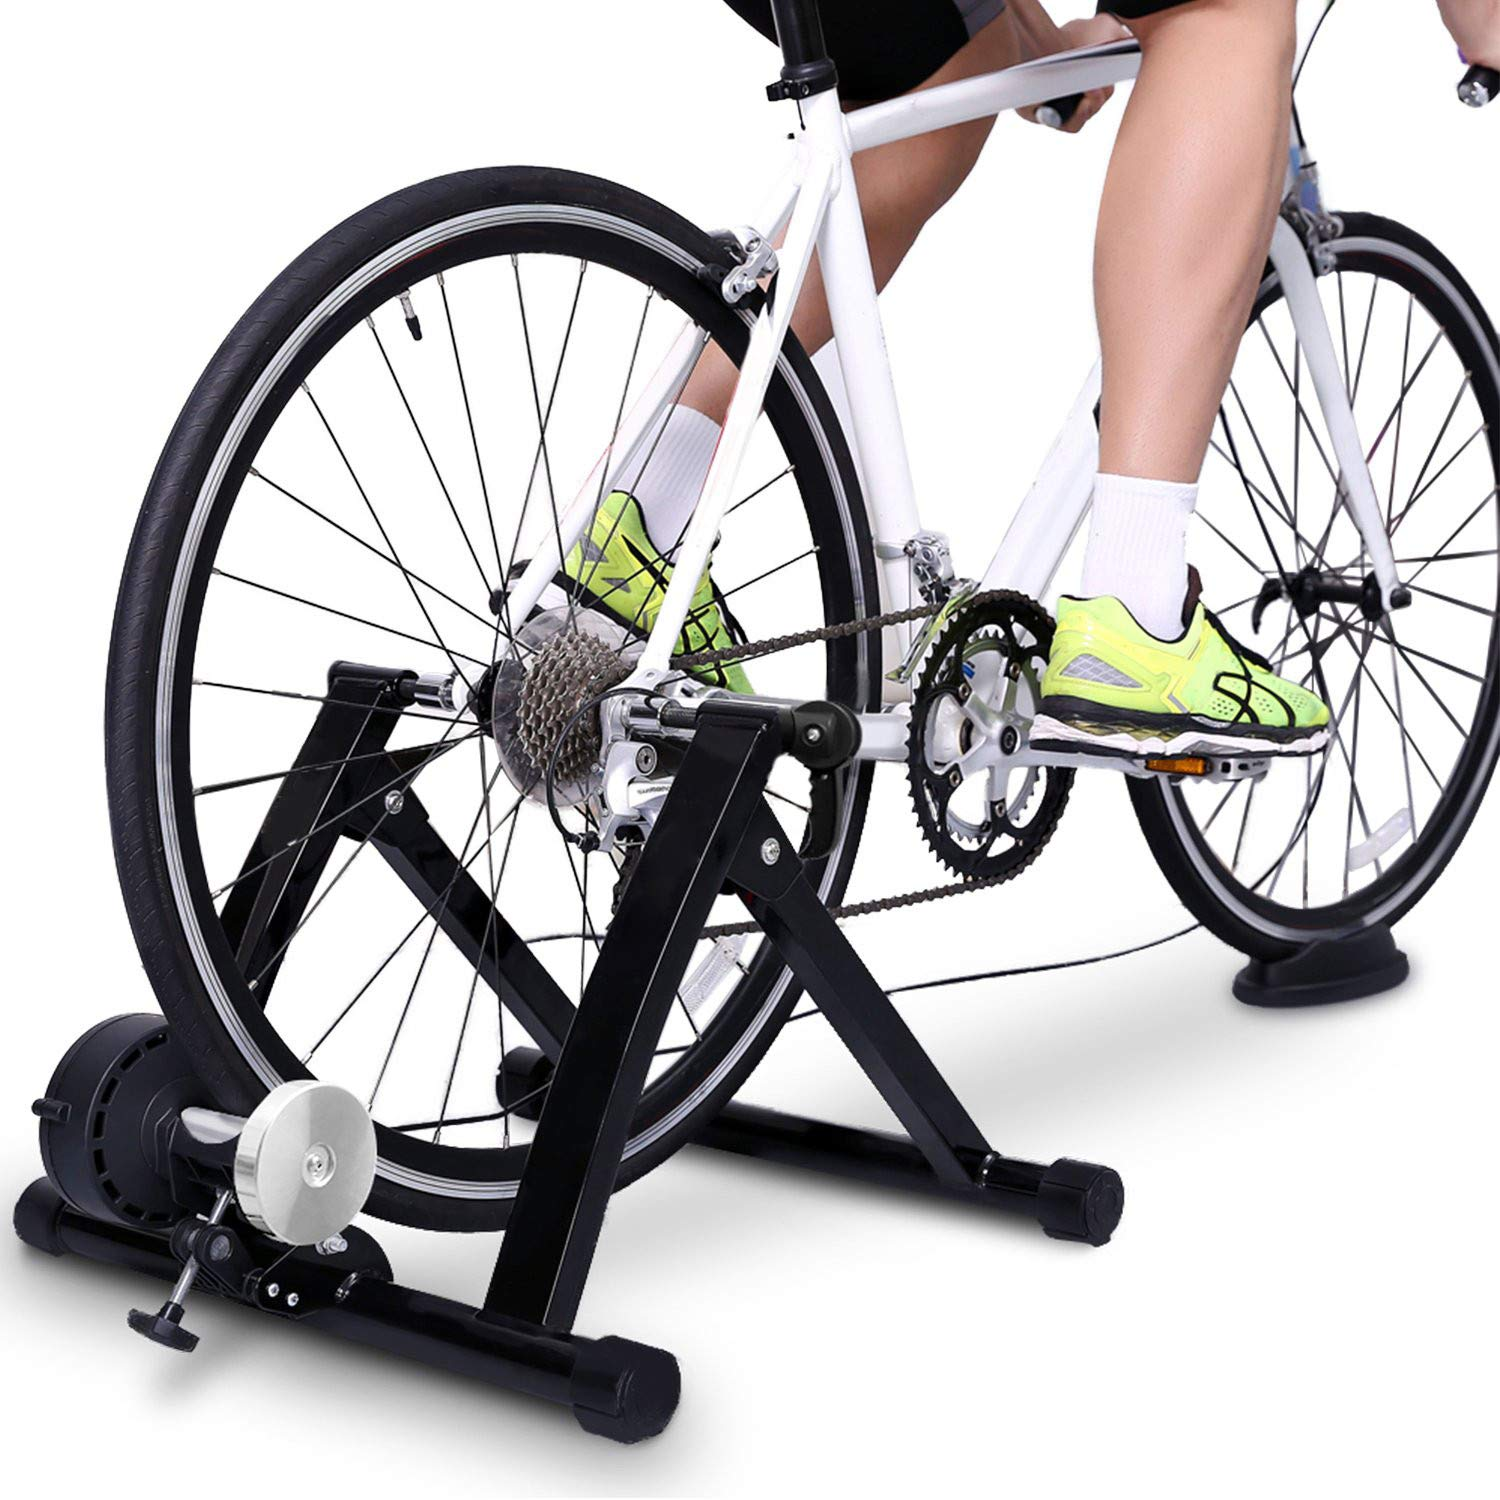 cnnIUHA Bike Trainer Stand Steel Bicycle Exercise Magnetic Stationary Stand with Noise Reduction Wheel,Indoor Exercise Bike Workout Trainer Stand(Shipped from USA) (B)